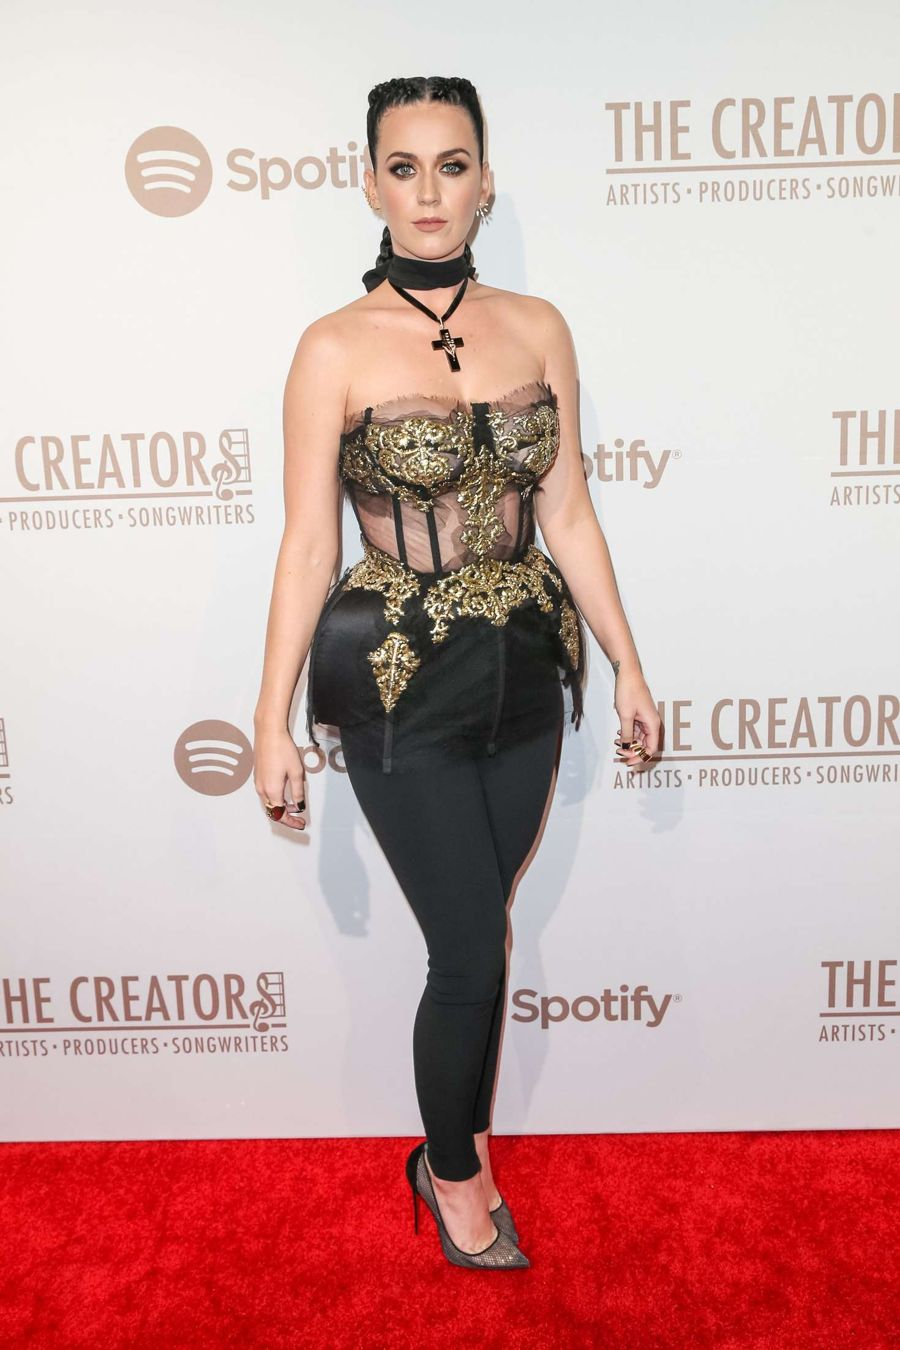 Katy Perry - The Creators Party Presented By Spotify